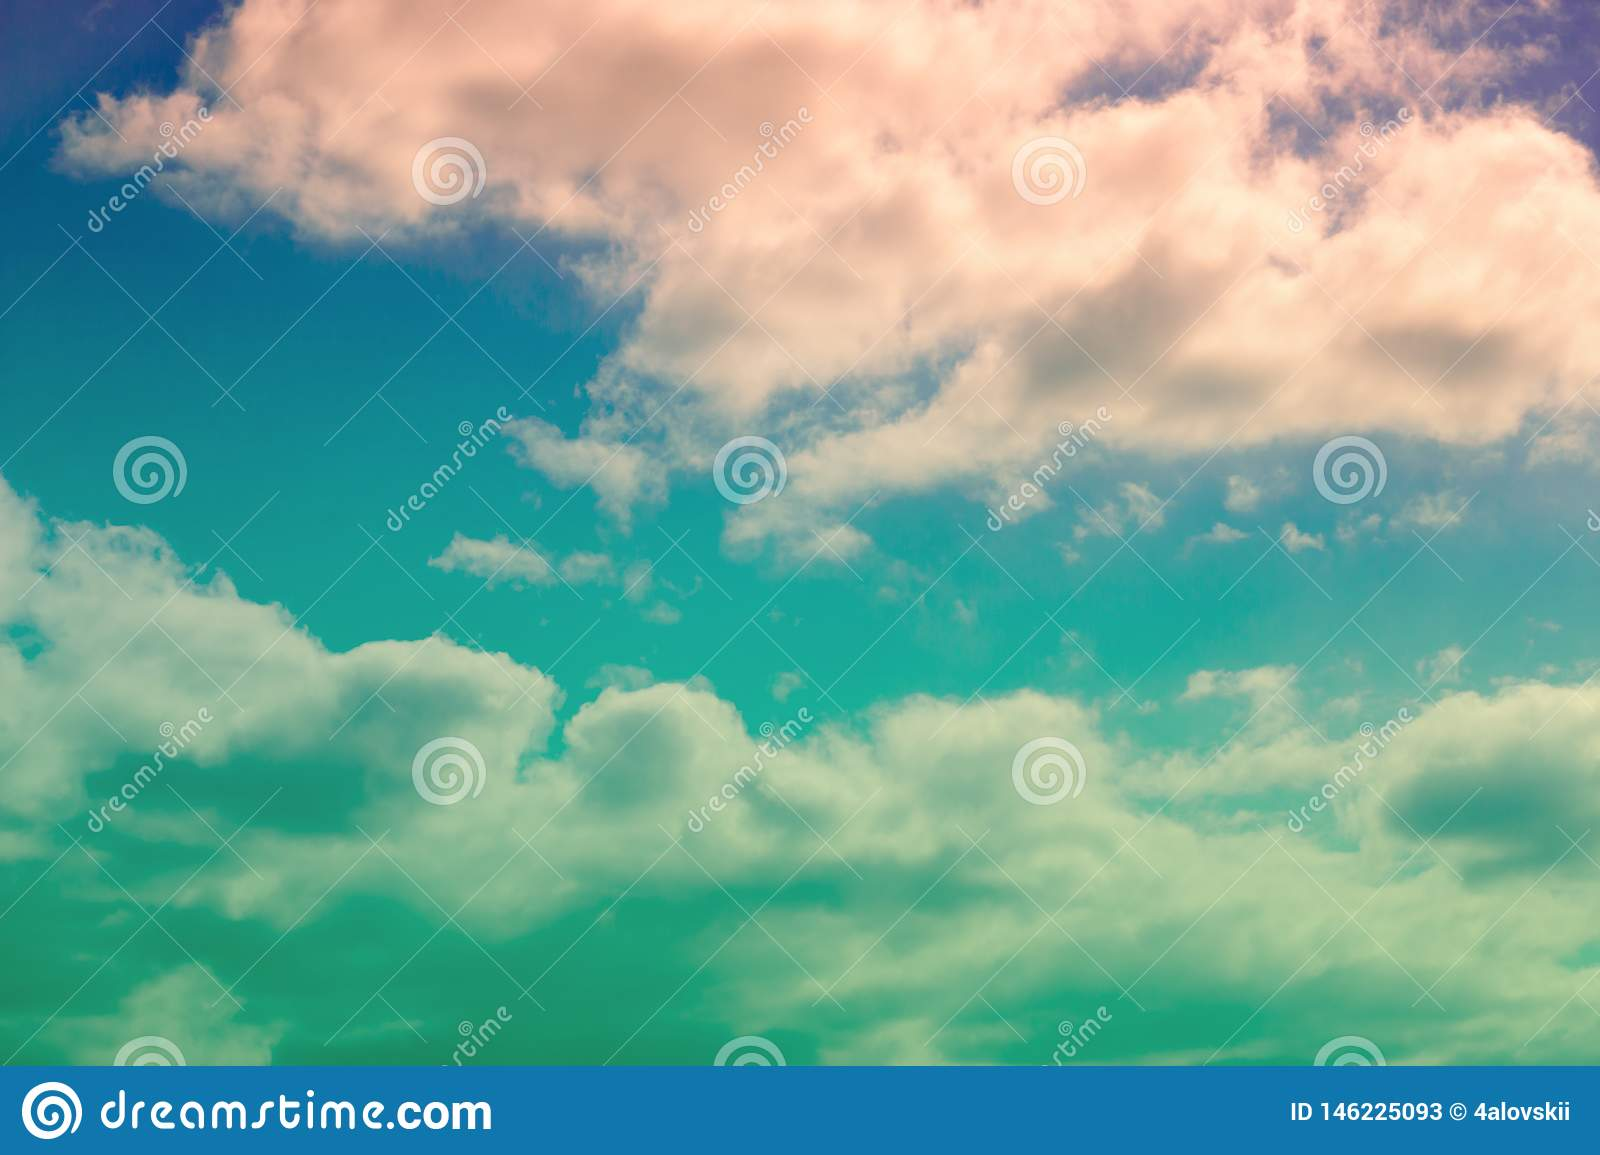 Dramatic sky and colorful clouds